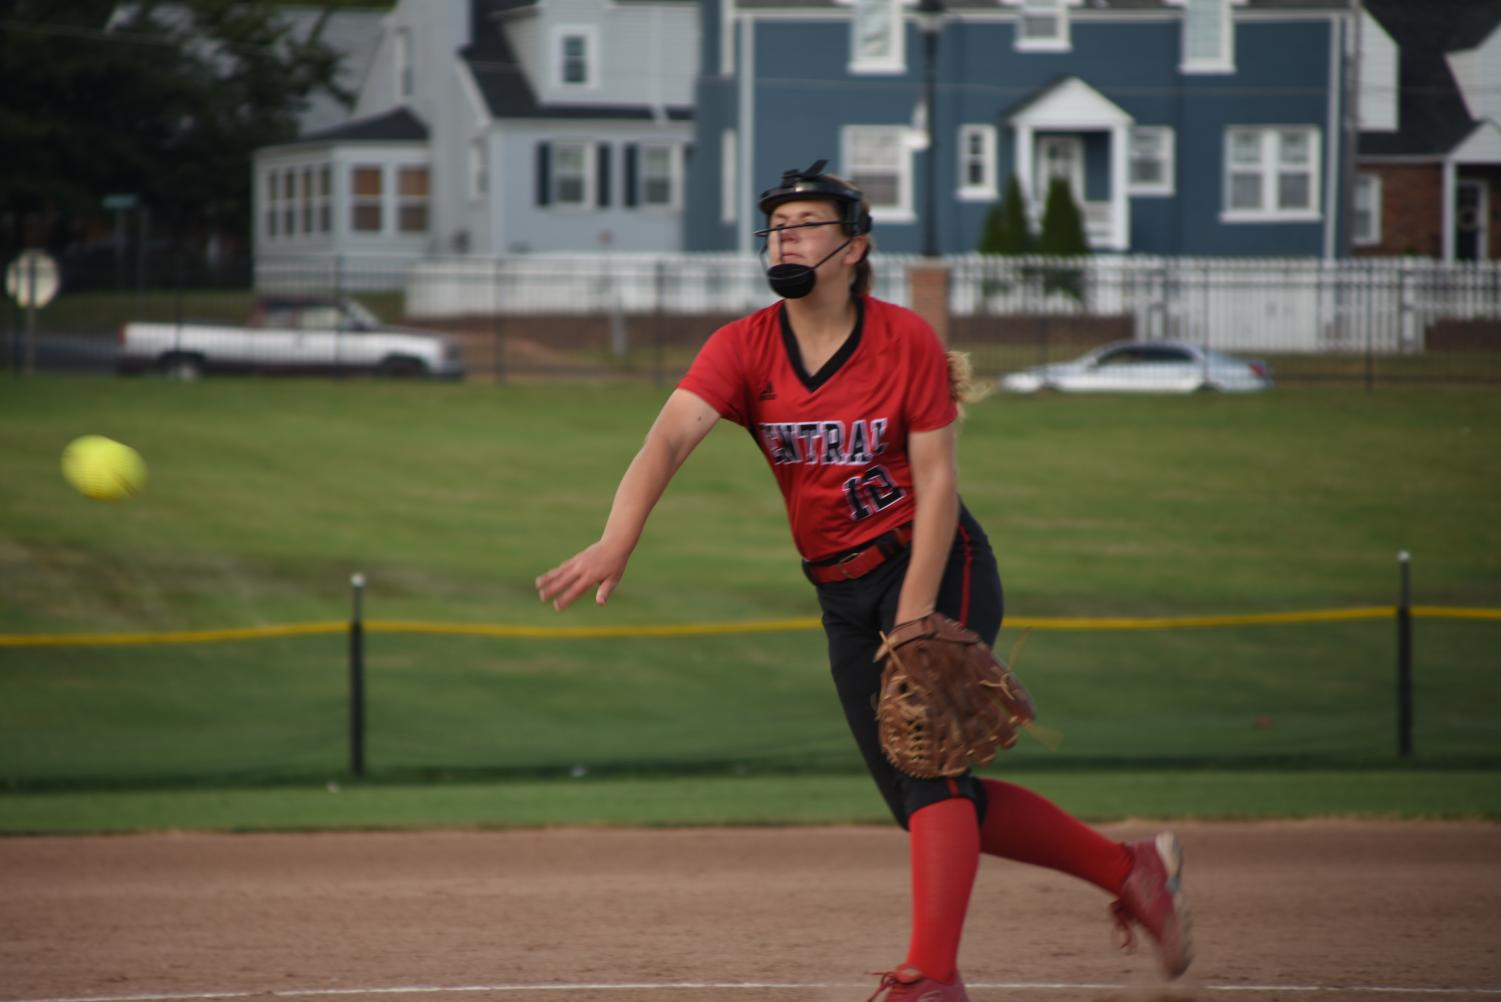 Junior Rylie Perry throws a pitch in a game against Ritenour on 10.1.18.